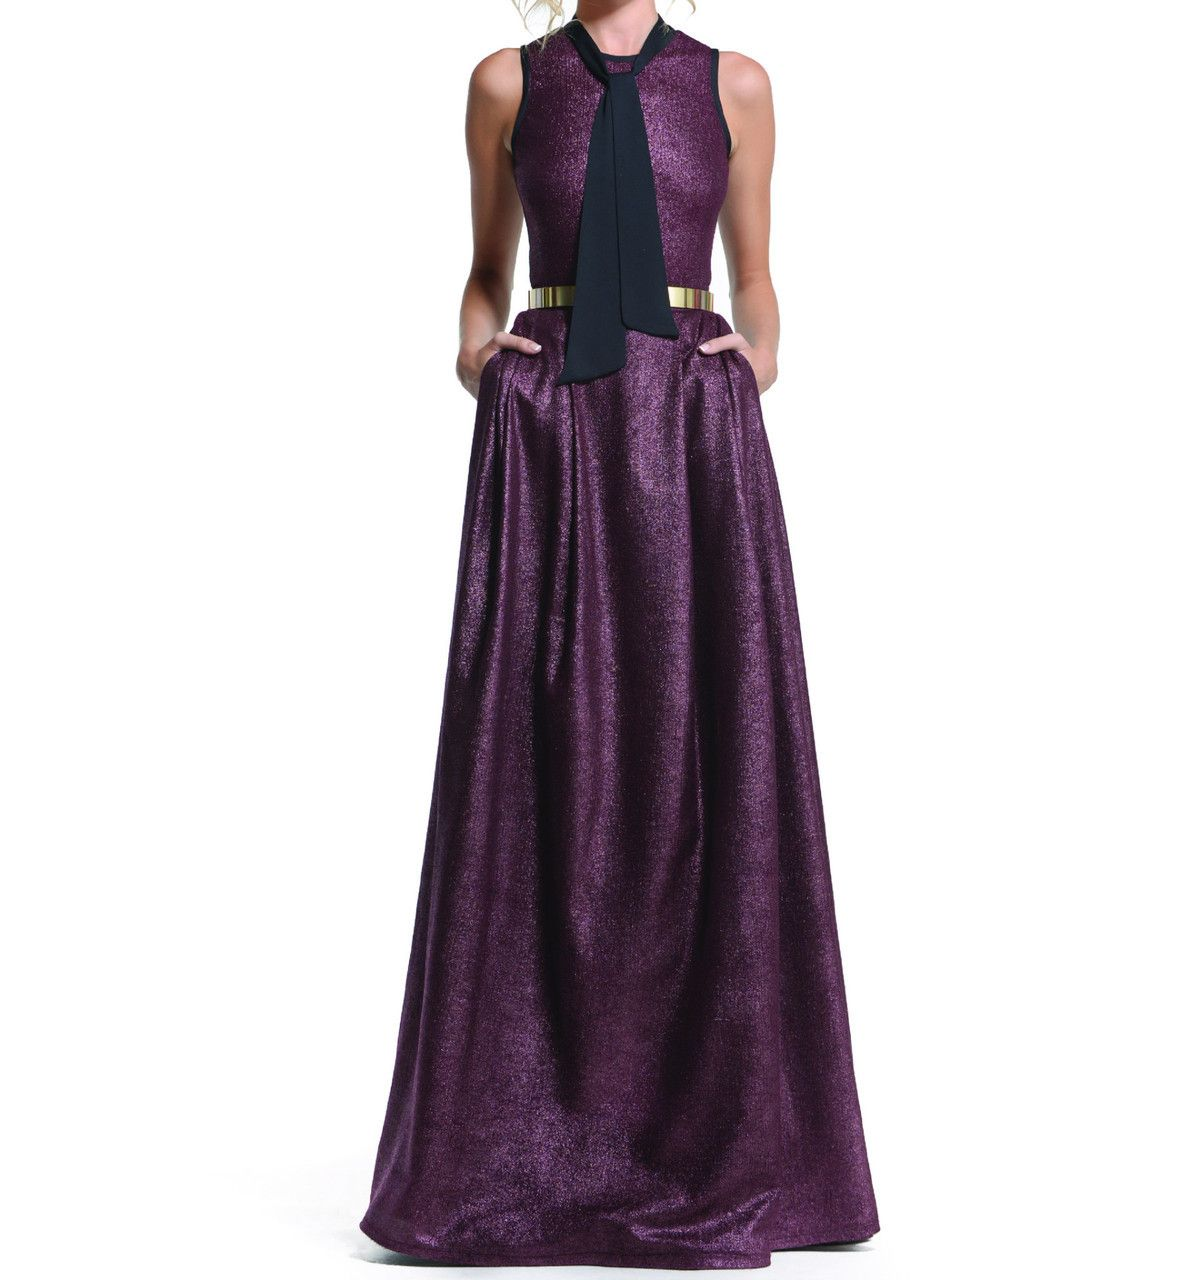 Couture Candy - Daniela Corte - Imperial Gown, $2,650.00 (https://www.couturecandy.com/daniela-corte-imperial-gown/)